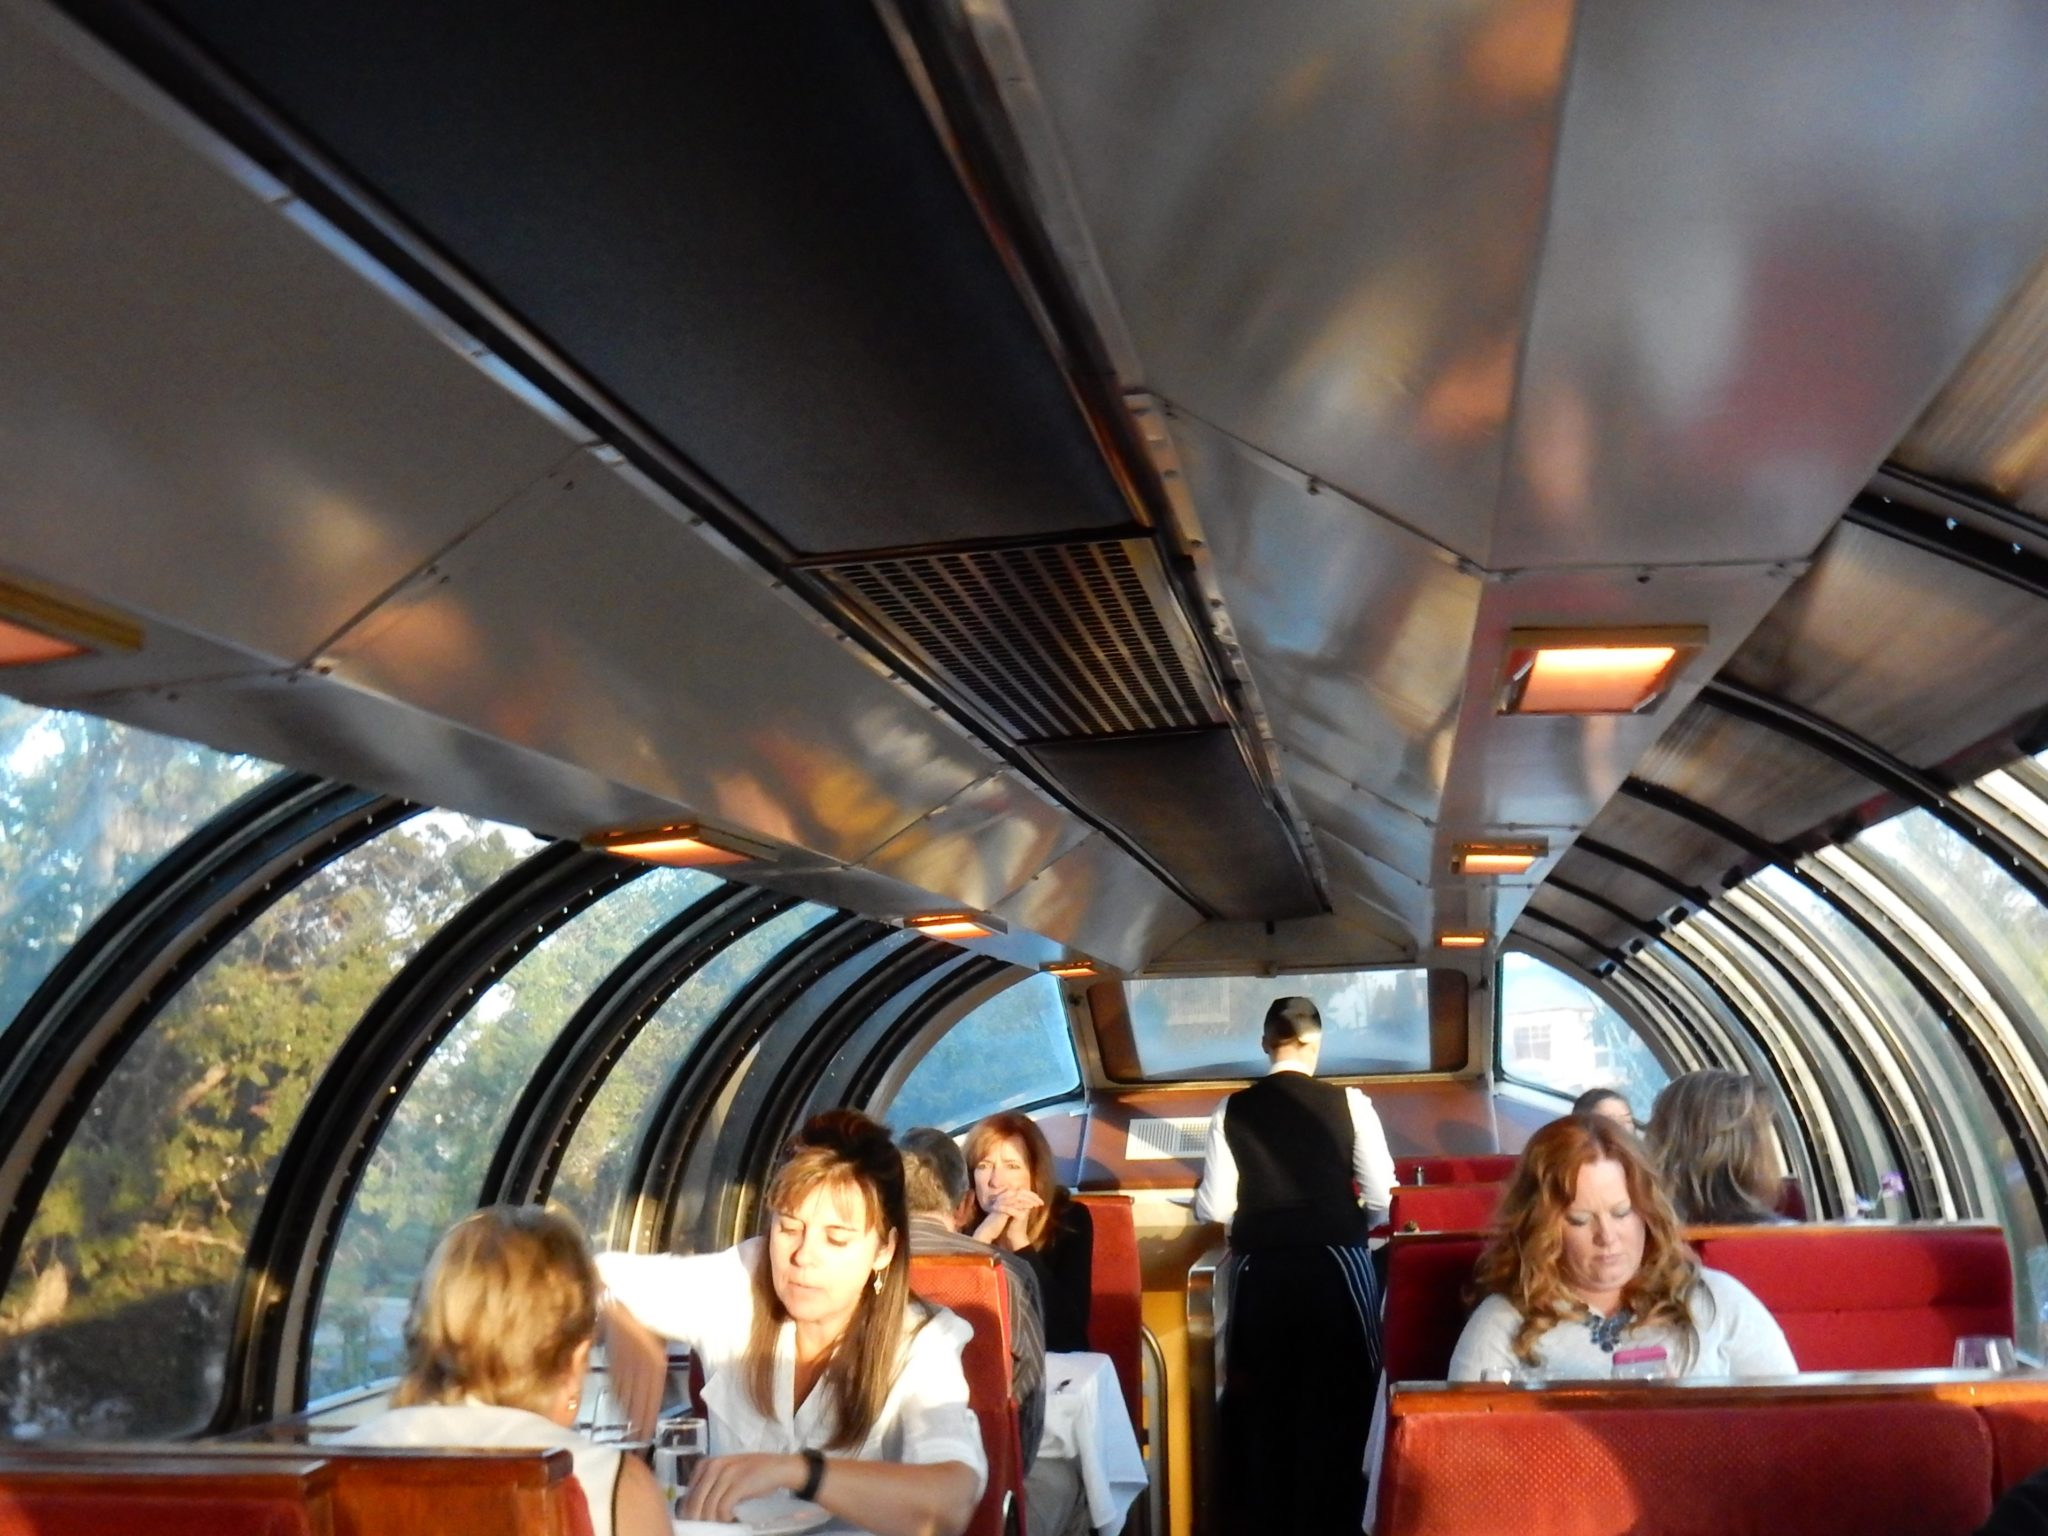 Experiencia viajera: Napa Valley Wine Train